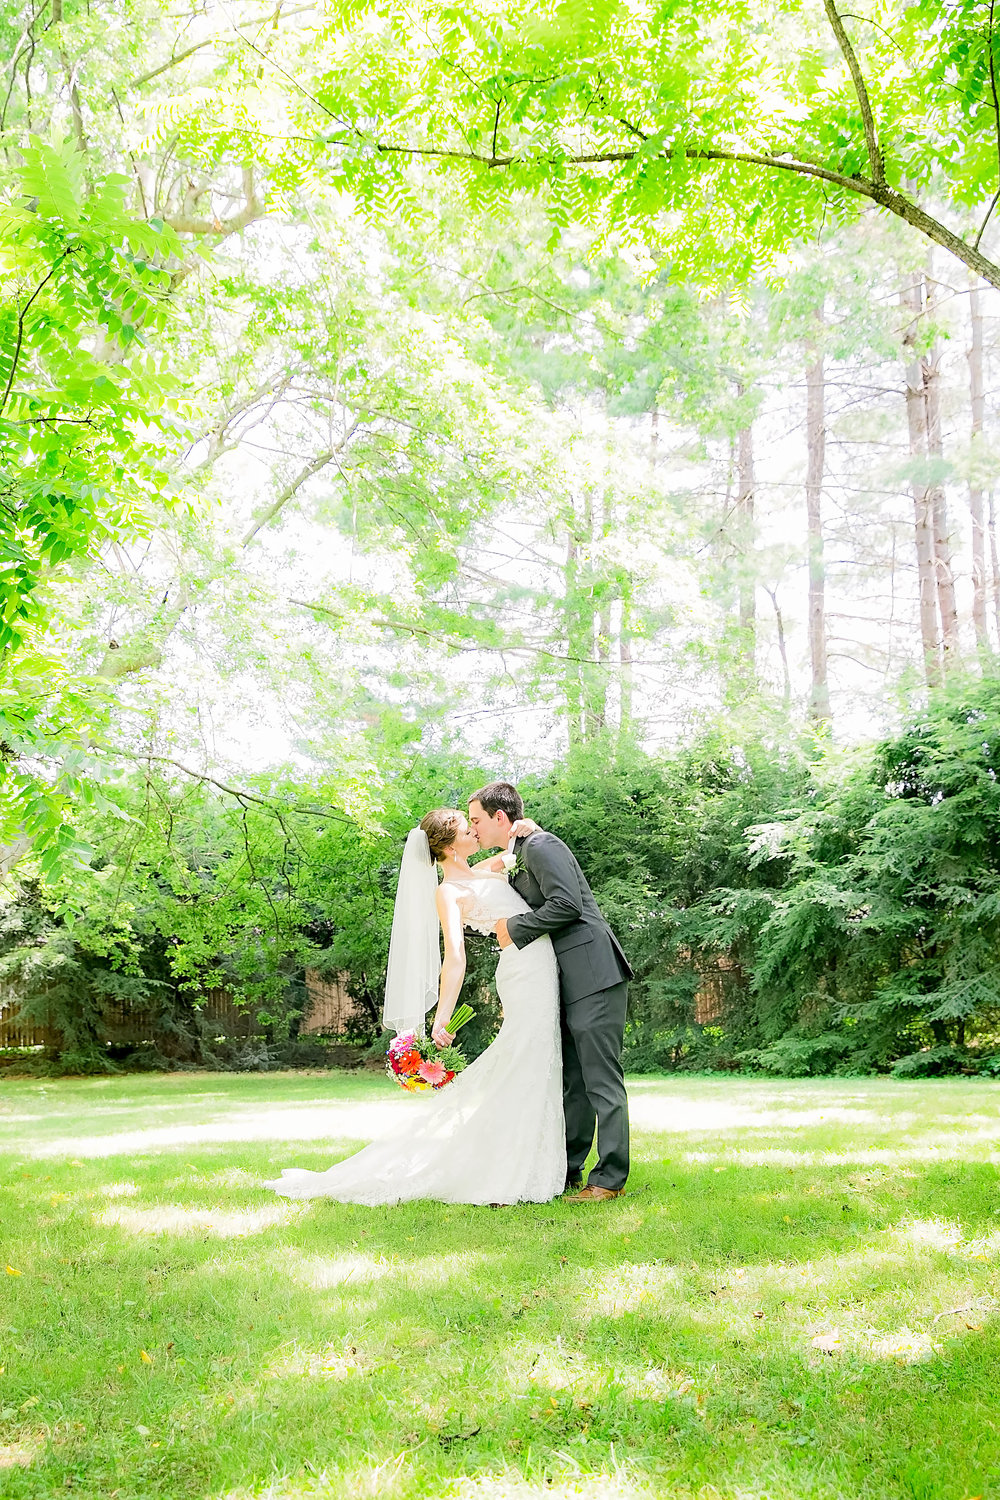 Hot Springs, NC wedding, East Tennessee Wedding photography, bride and groom romantic kiss